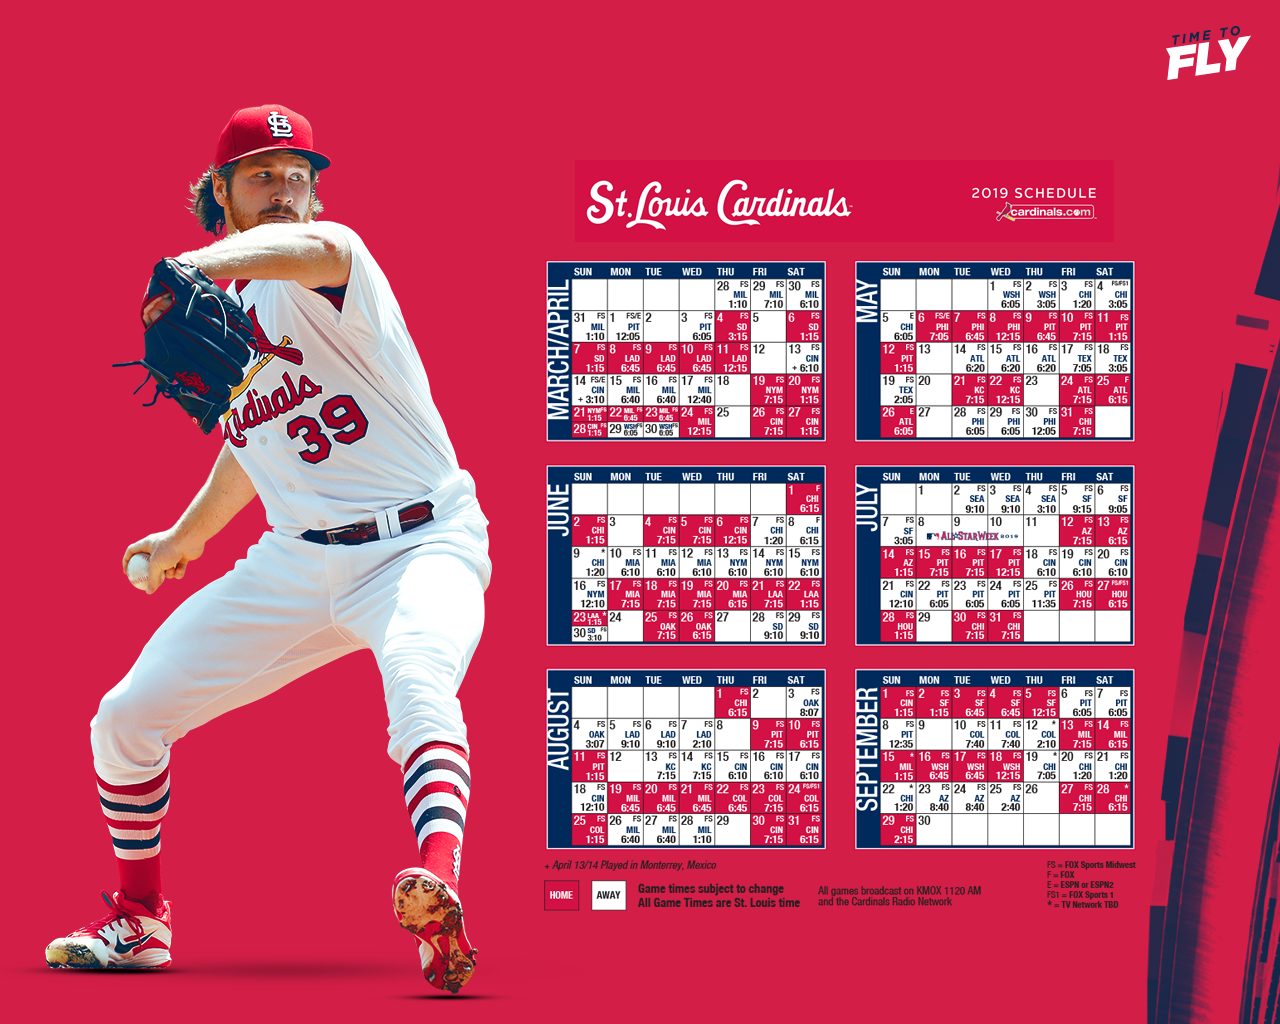 St Louis Cardinals Wallpaper Hd Posted By Ryan Johnson